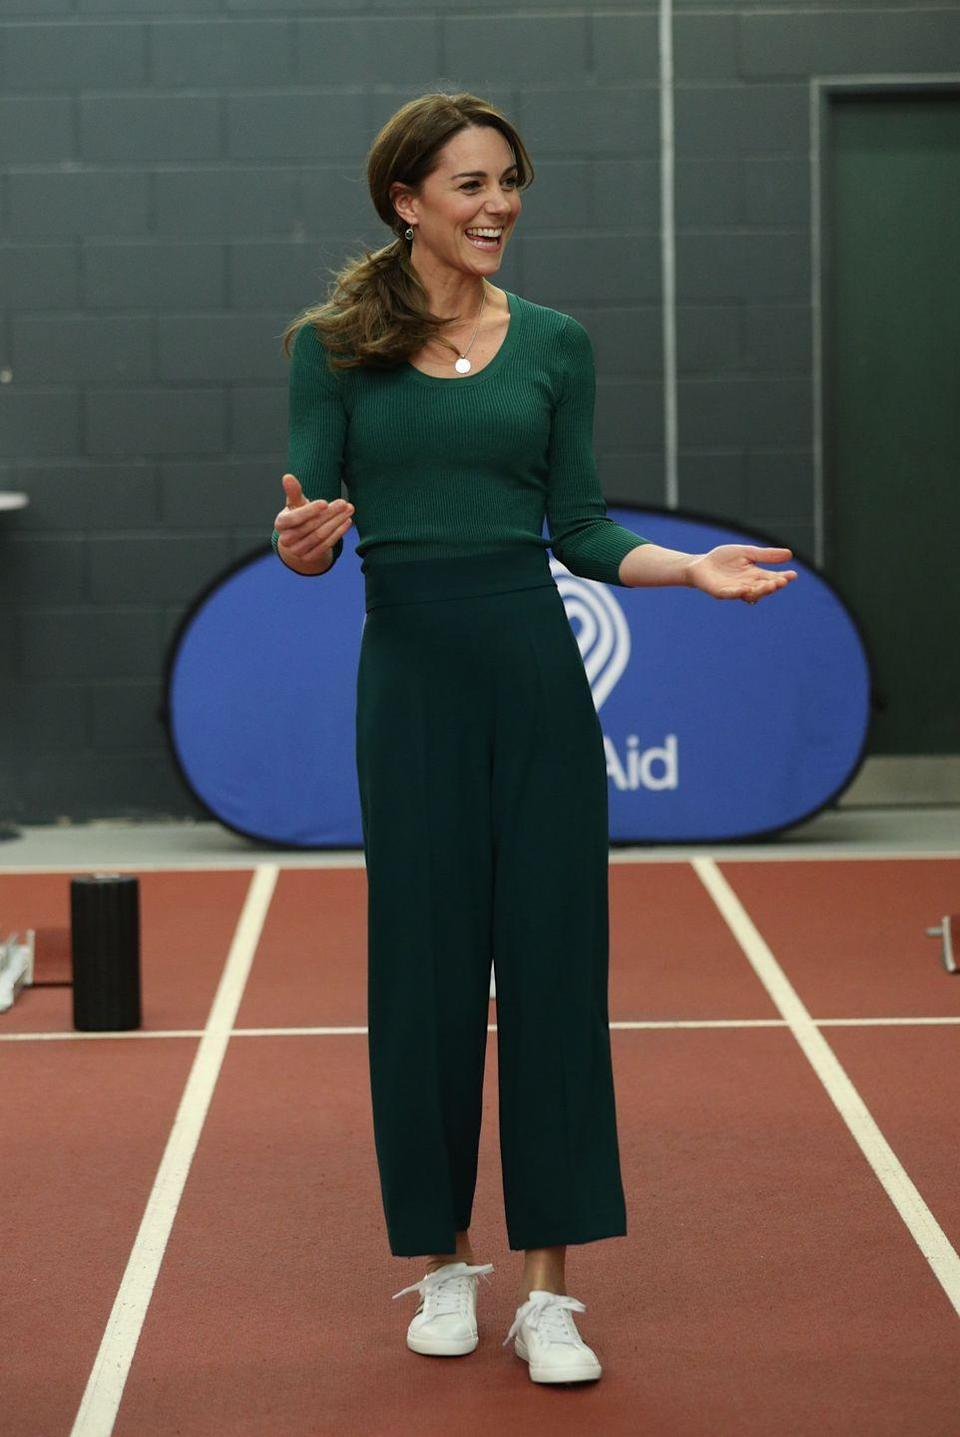 """<p>Kate chose an <a href=""""https://www.townandcountrymag.com/society/tradition/a31112240/kate-middleton-green-athleisure-look-sportsaid-photos/"""" rel=""""nofollow noopener"""" target=""""_blank"""" data-ylk=""""slk:all-green athleisure ensemble"""" class=""""link rapid-noclick-resp"""">all-green athleisure ensemble</a> to visit a SportsAid event at the London Stadium in Stratford. The wide-leg pants are <a href=""""https://twitter.com/kateroyalcloset/status/1232637744230412288"""" rel=""""nofollow noopener"""" target=""""_blank"""" data-ylk=""""slk:reportedly"""" class=""""link rapid-noclick-resp"""">reportedly</a> from Zara, one of the Duchess's favorite shops. And she accessorized the look with a sweet necklace engraved with """"GCL""""—<a href=""""https://www.townandcountrymag.com/style/fashion-trends/a30642875/kate-middleton-gold-necklace-prince-george-louis-princess-charlotte/"""" rel=""""nofollow noopener"""" target=""""_blank"""" data-ylk=""""slk:a tiny tribute to her three children: George, Charlotte, and Louis"""" class=""""link rapid-noclick-resp"""">a tiny tribute to her three children: George, Charlotte, and Louis</a>.</p>"""